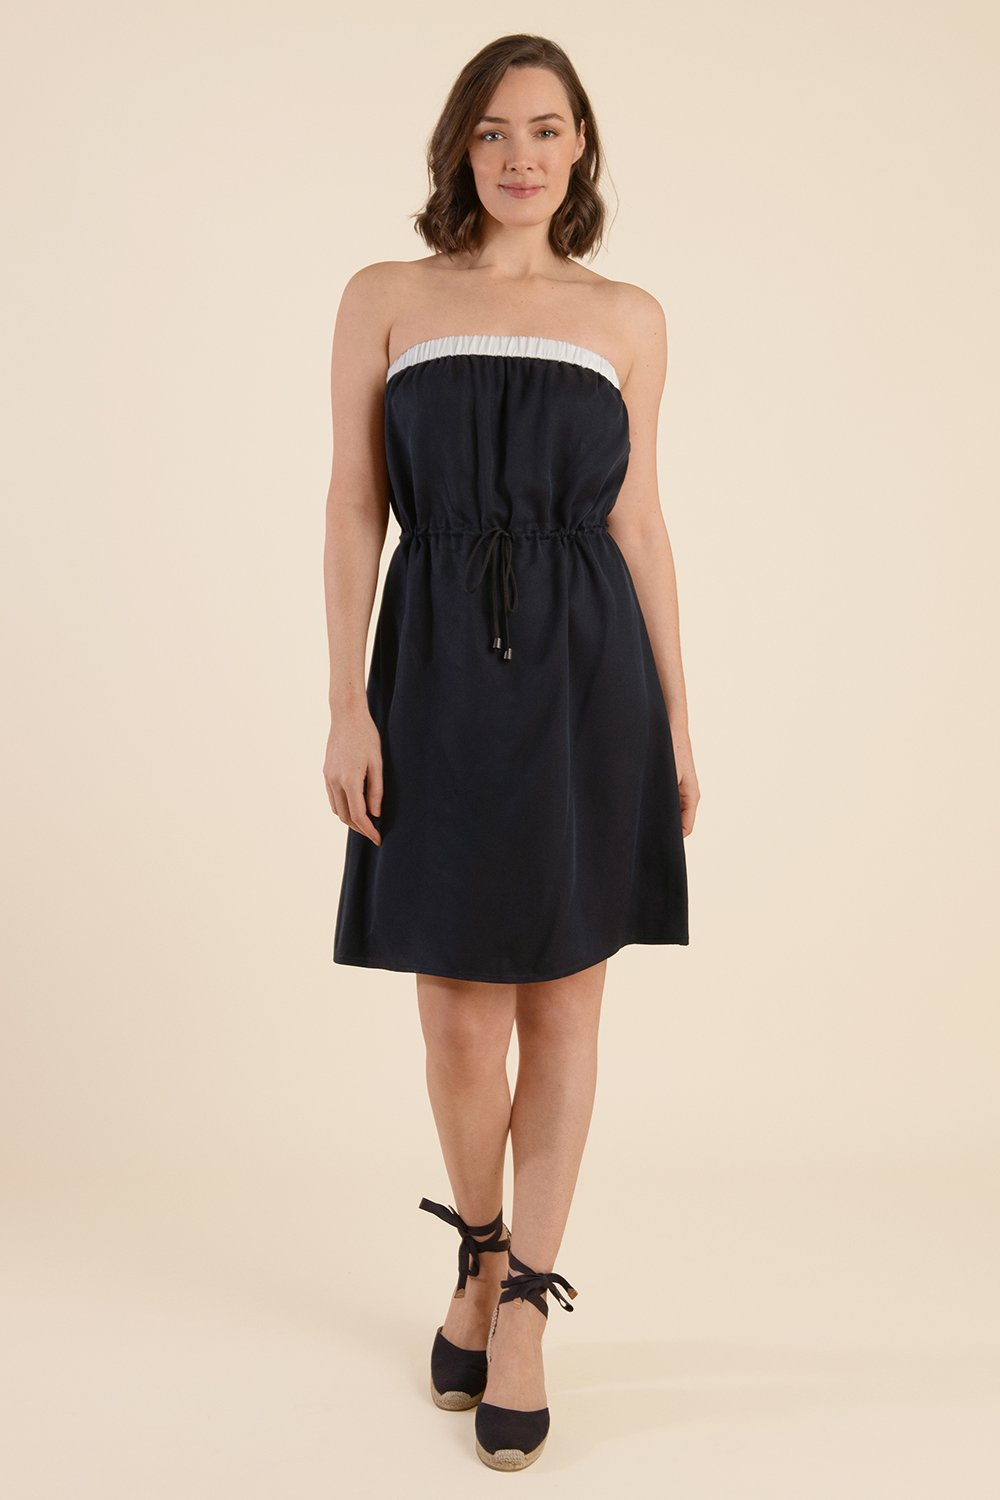 Strapless Summer Dress - Midnight Blue - Cat Turner